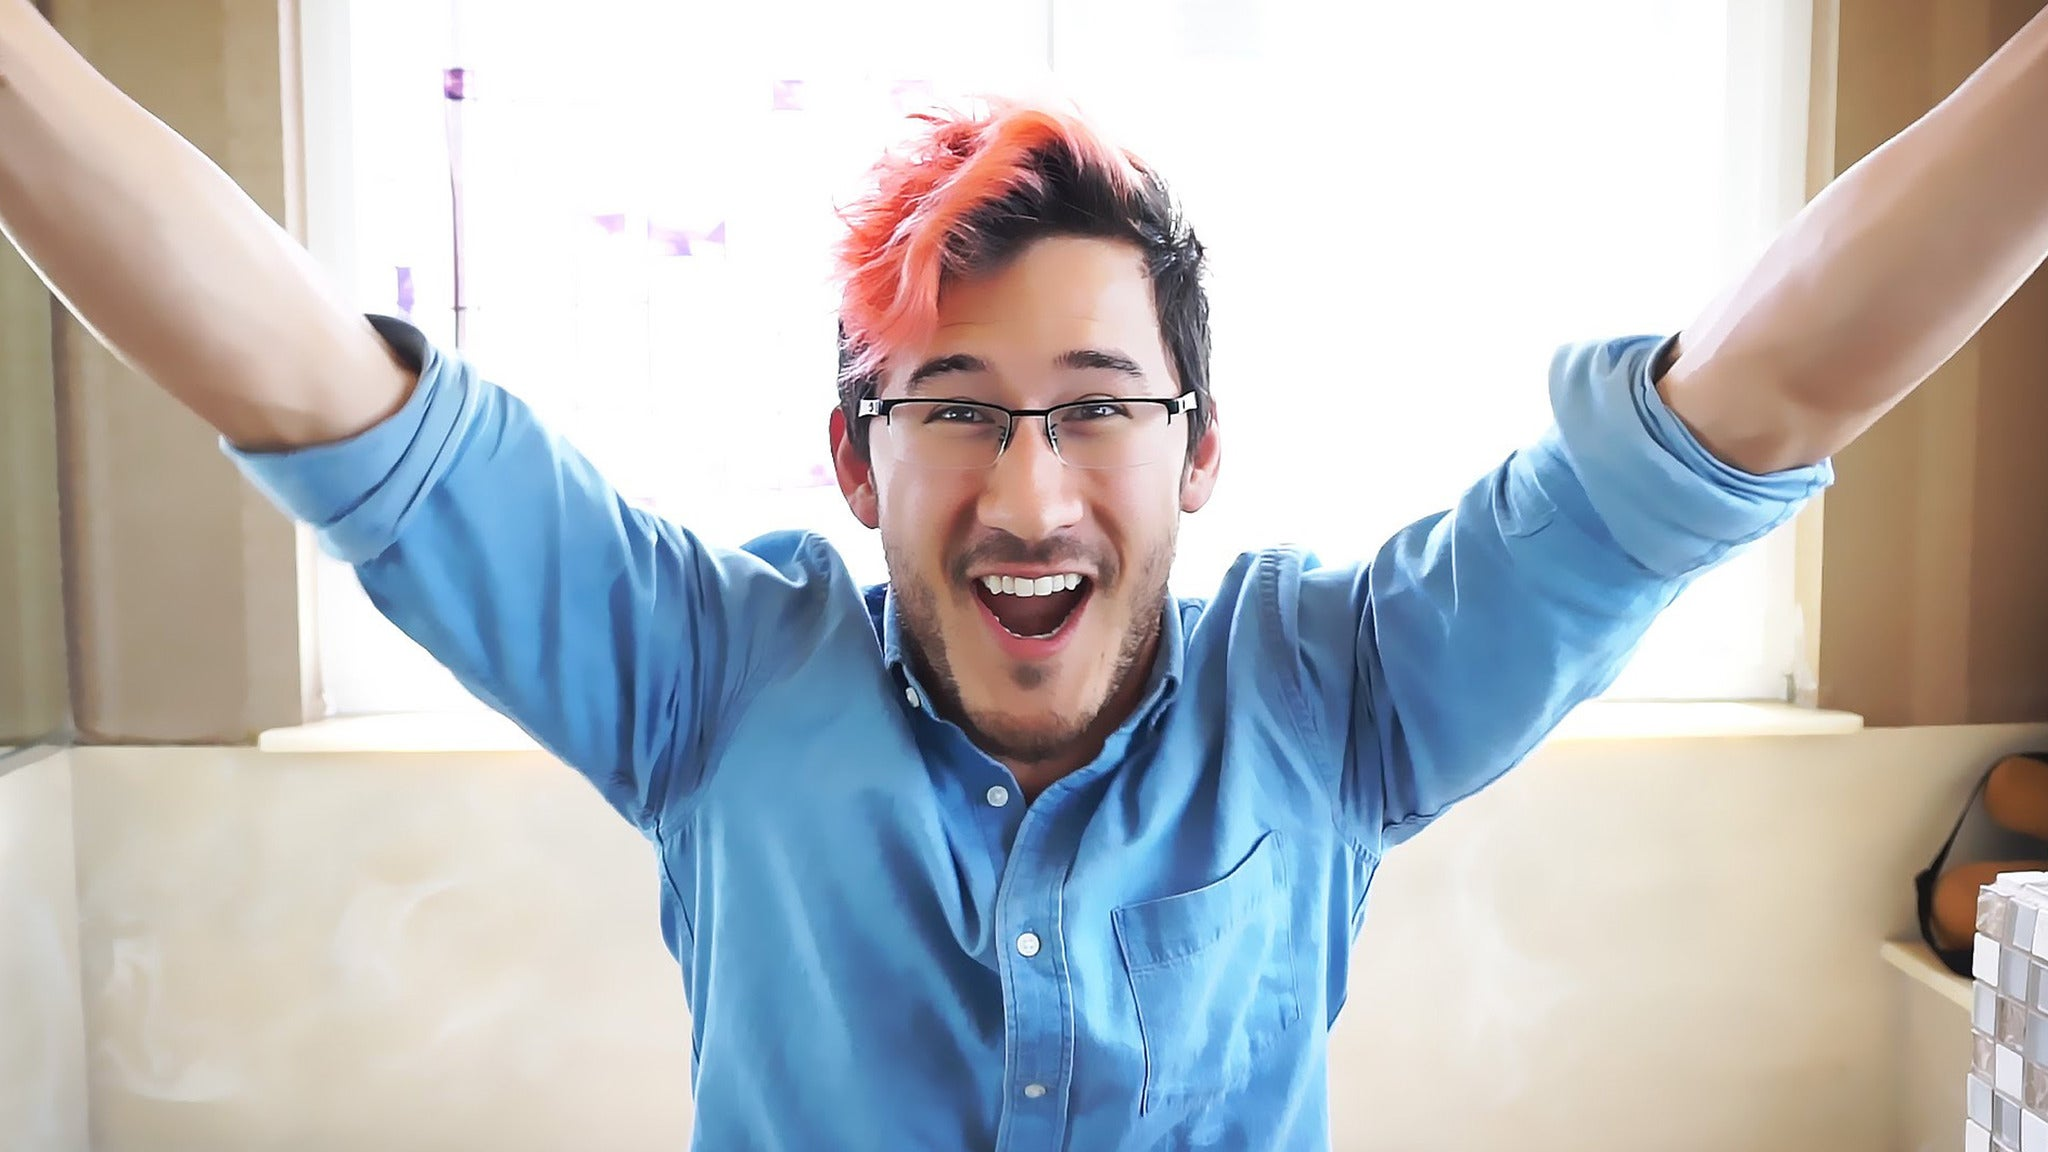 Markiplier's You're Welcome Tour at Comerica Theatre